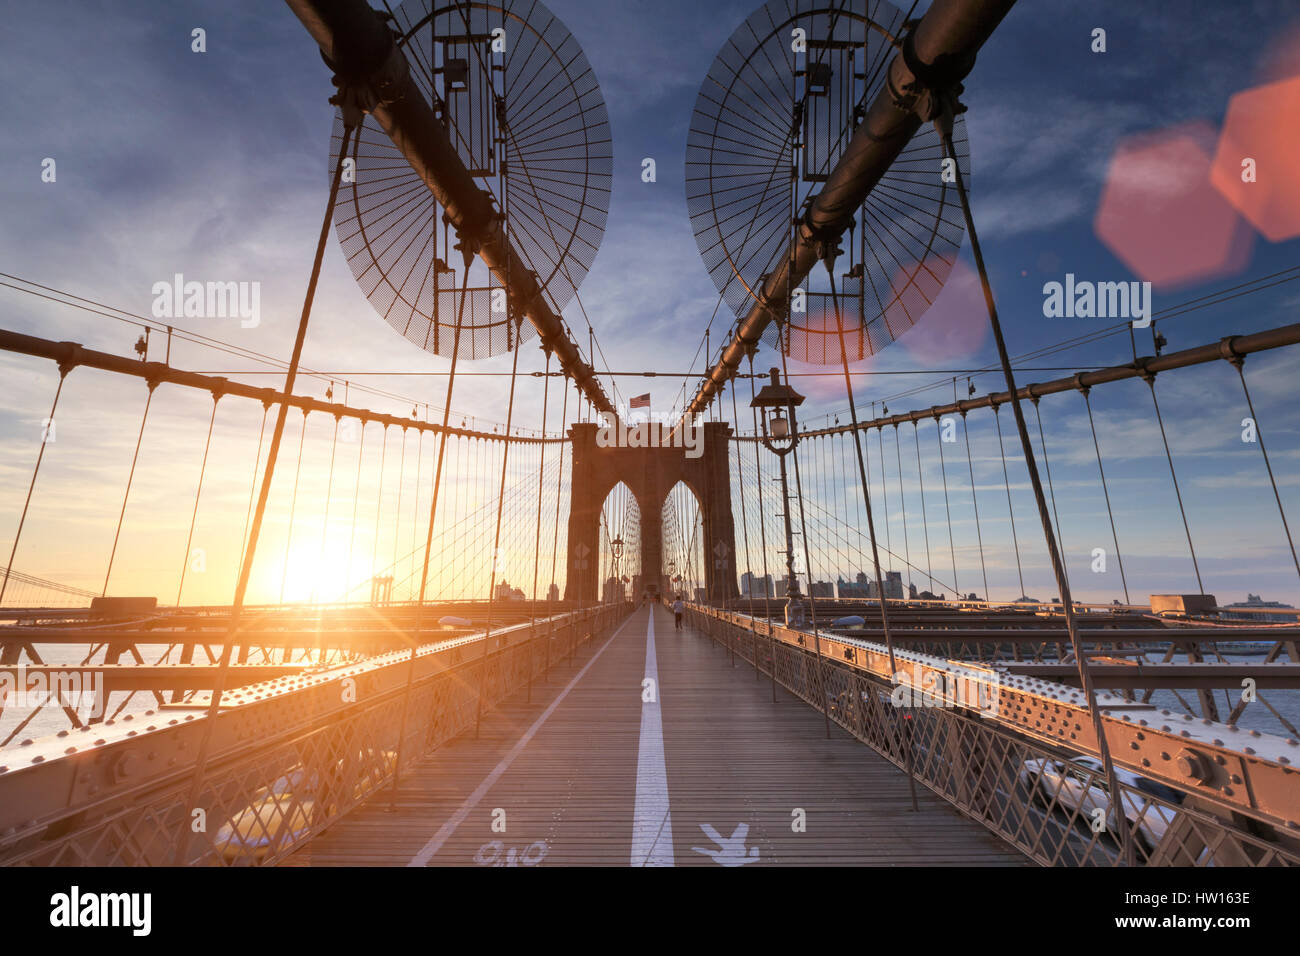 USA, New York, New York City, Brooklyn Bridge Stockbild